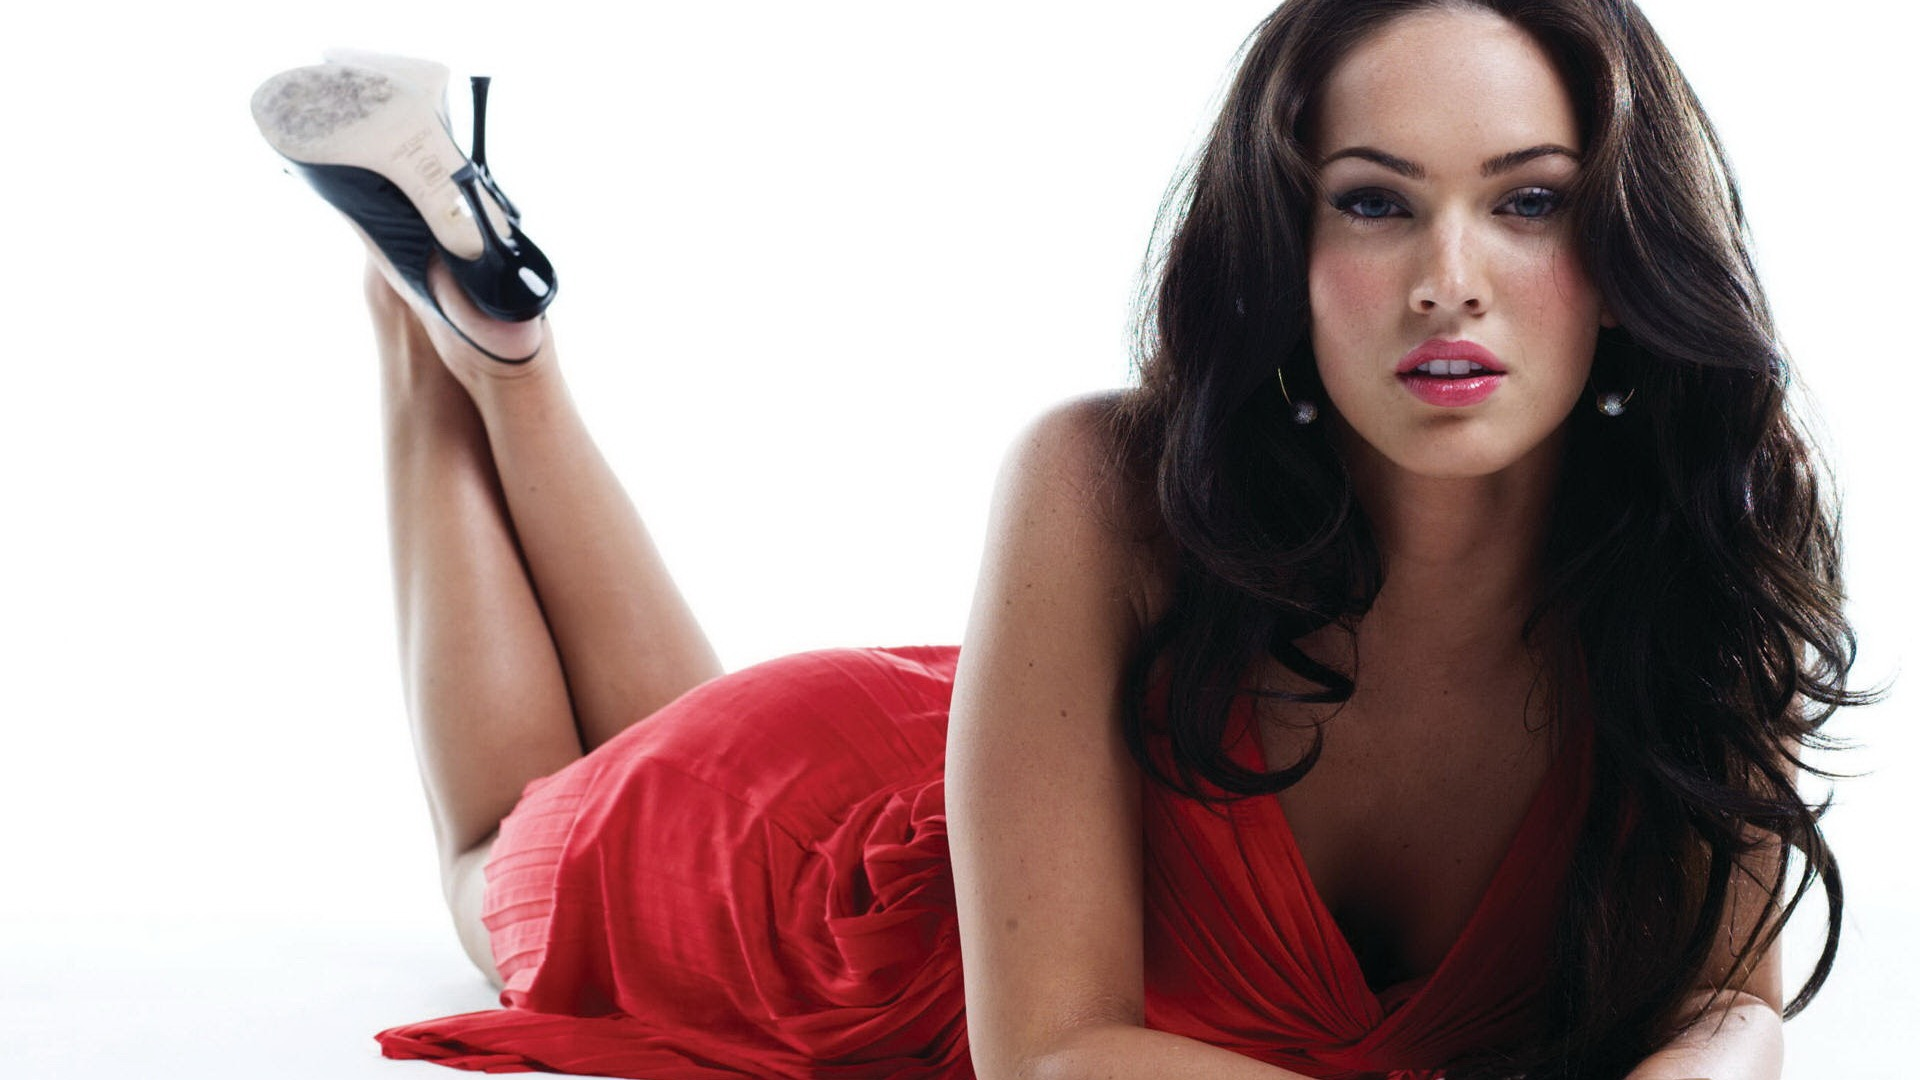 Megan Fox sEXY lIPS